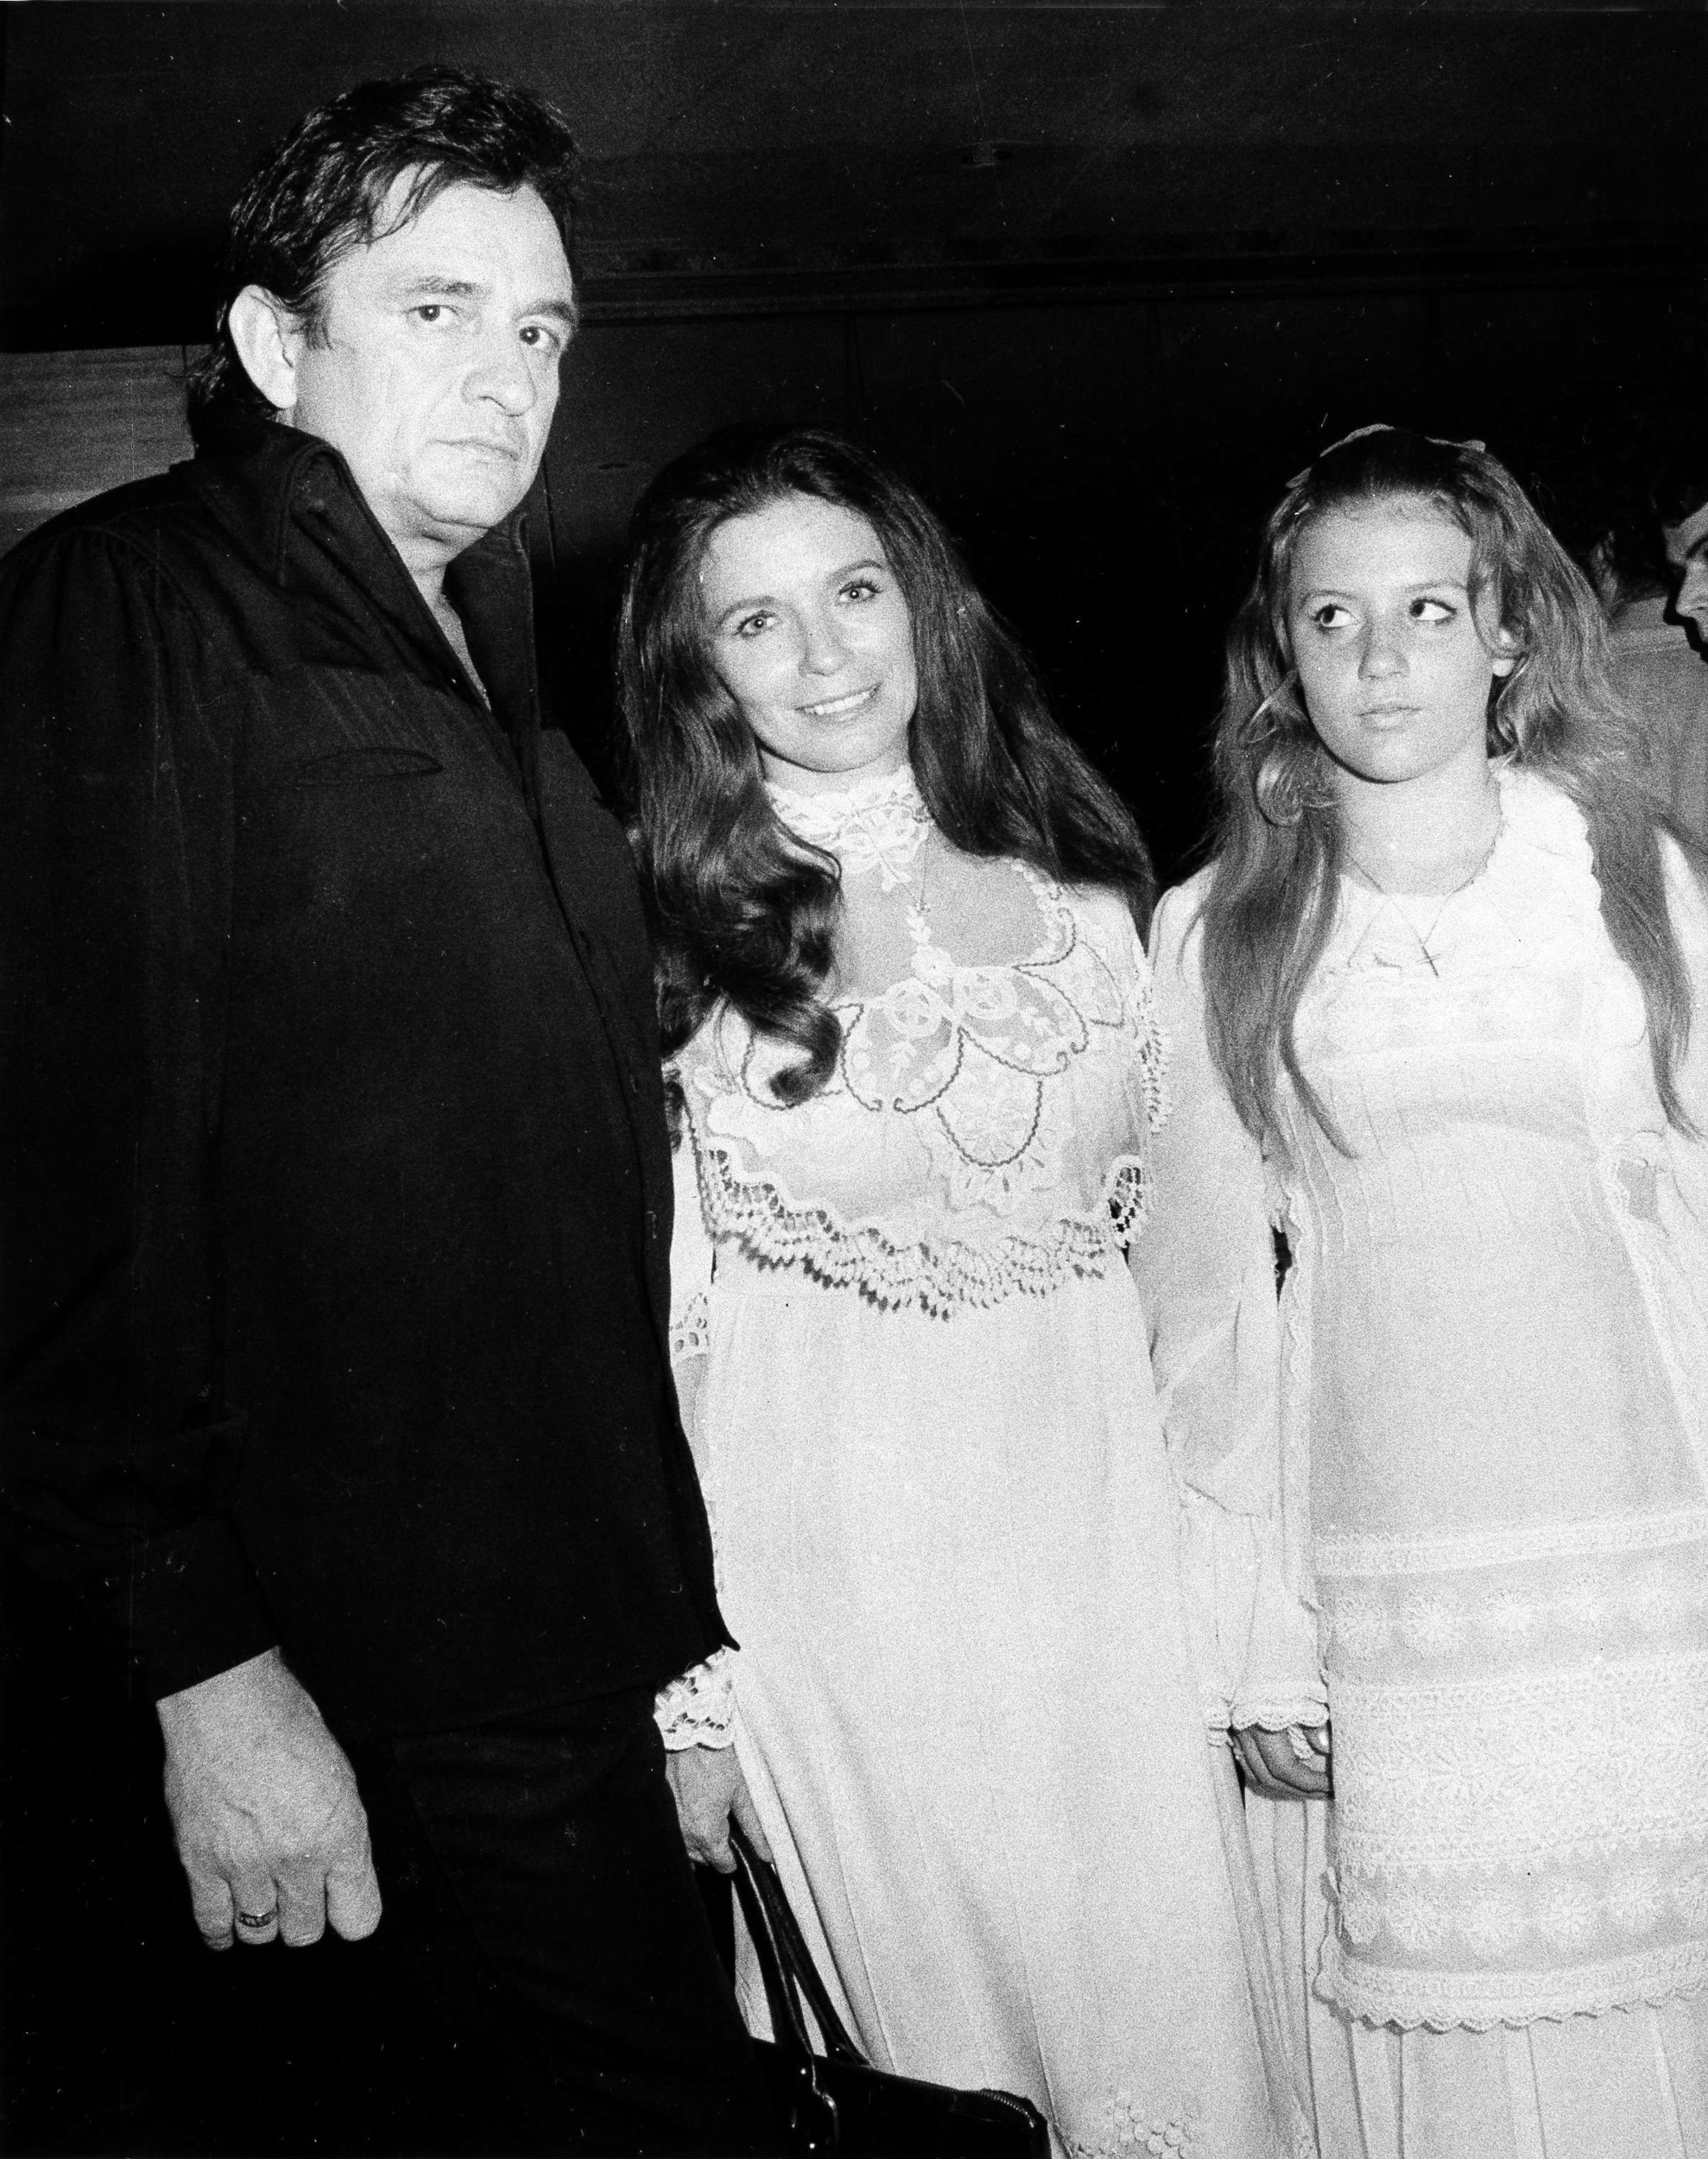 Johnny cash 39 s love letter to june carter may be greatest for Pictures of johnny cash and june carter